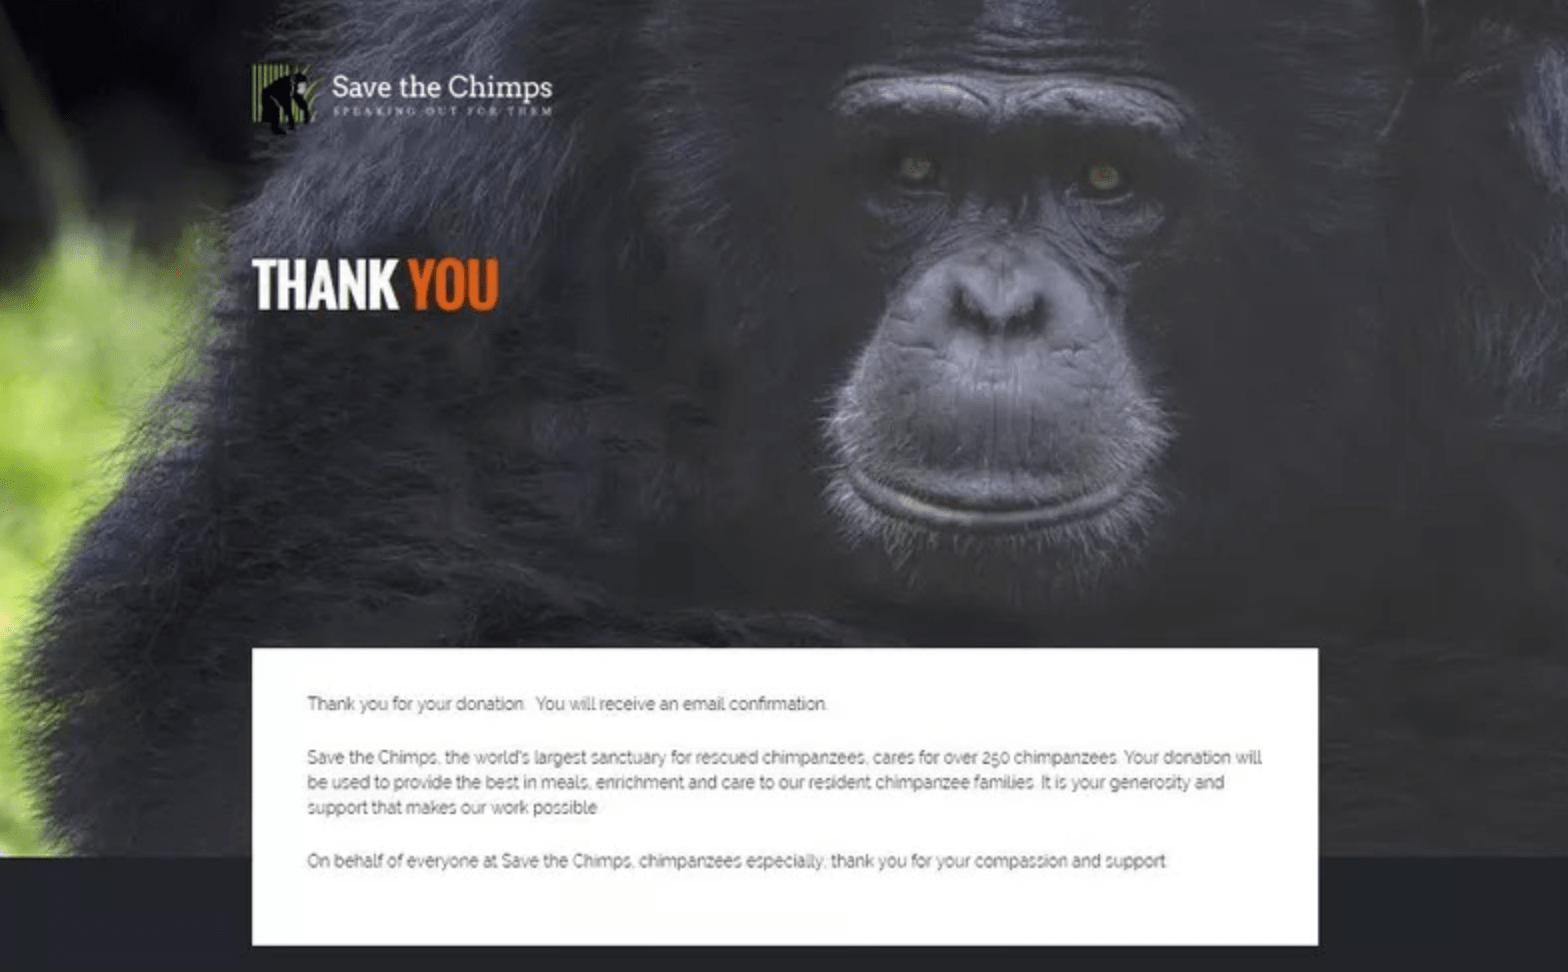 save the chimp's thank you page